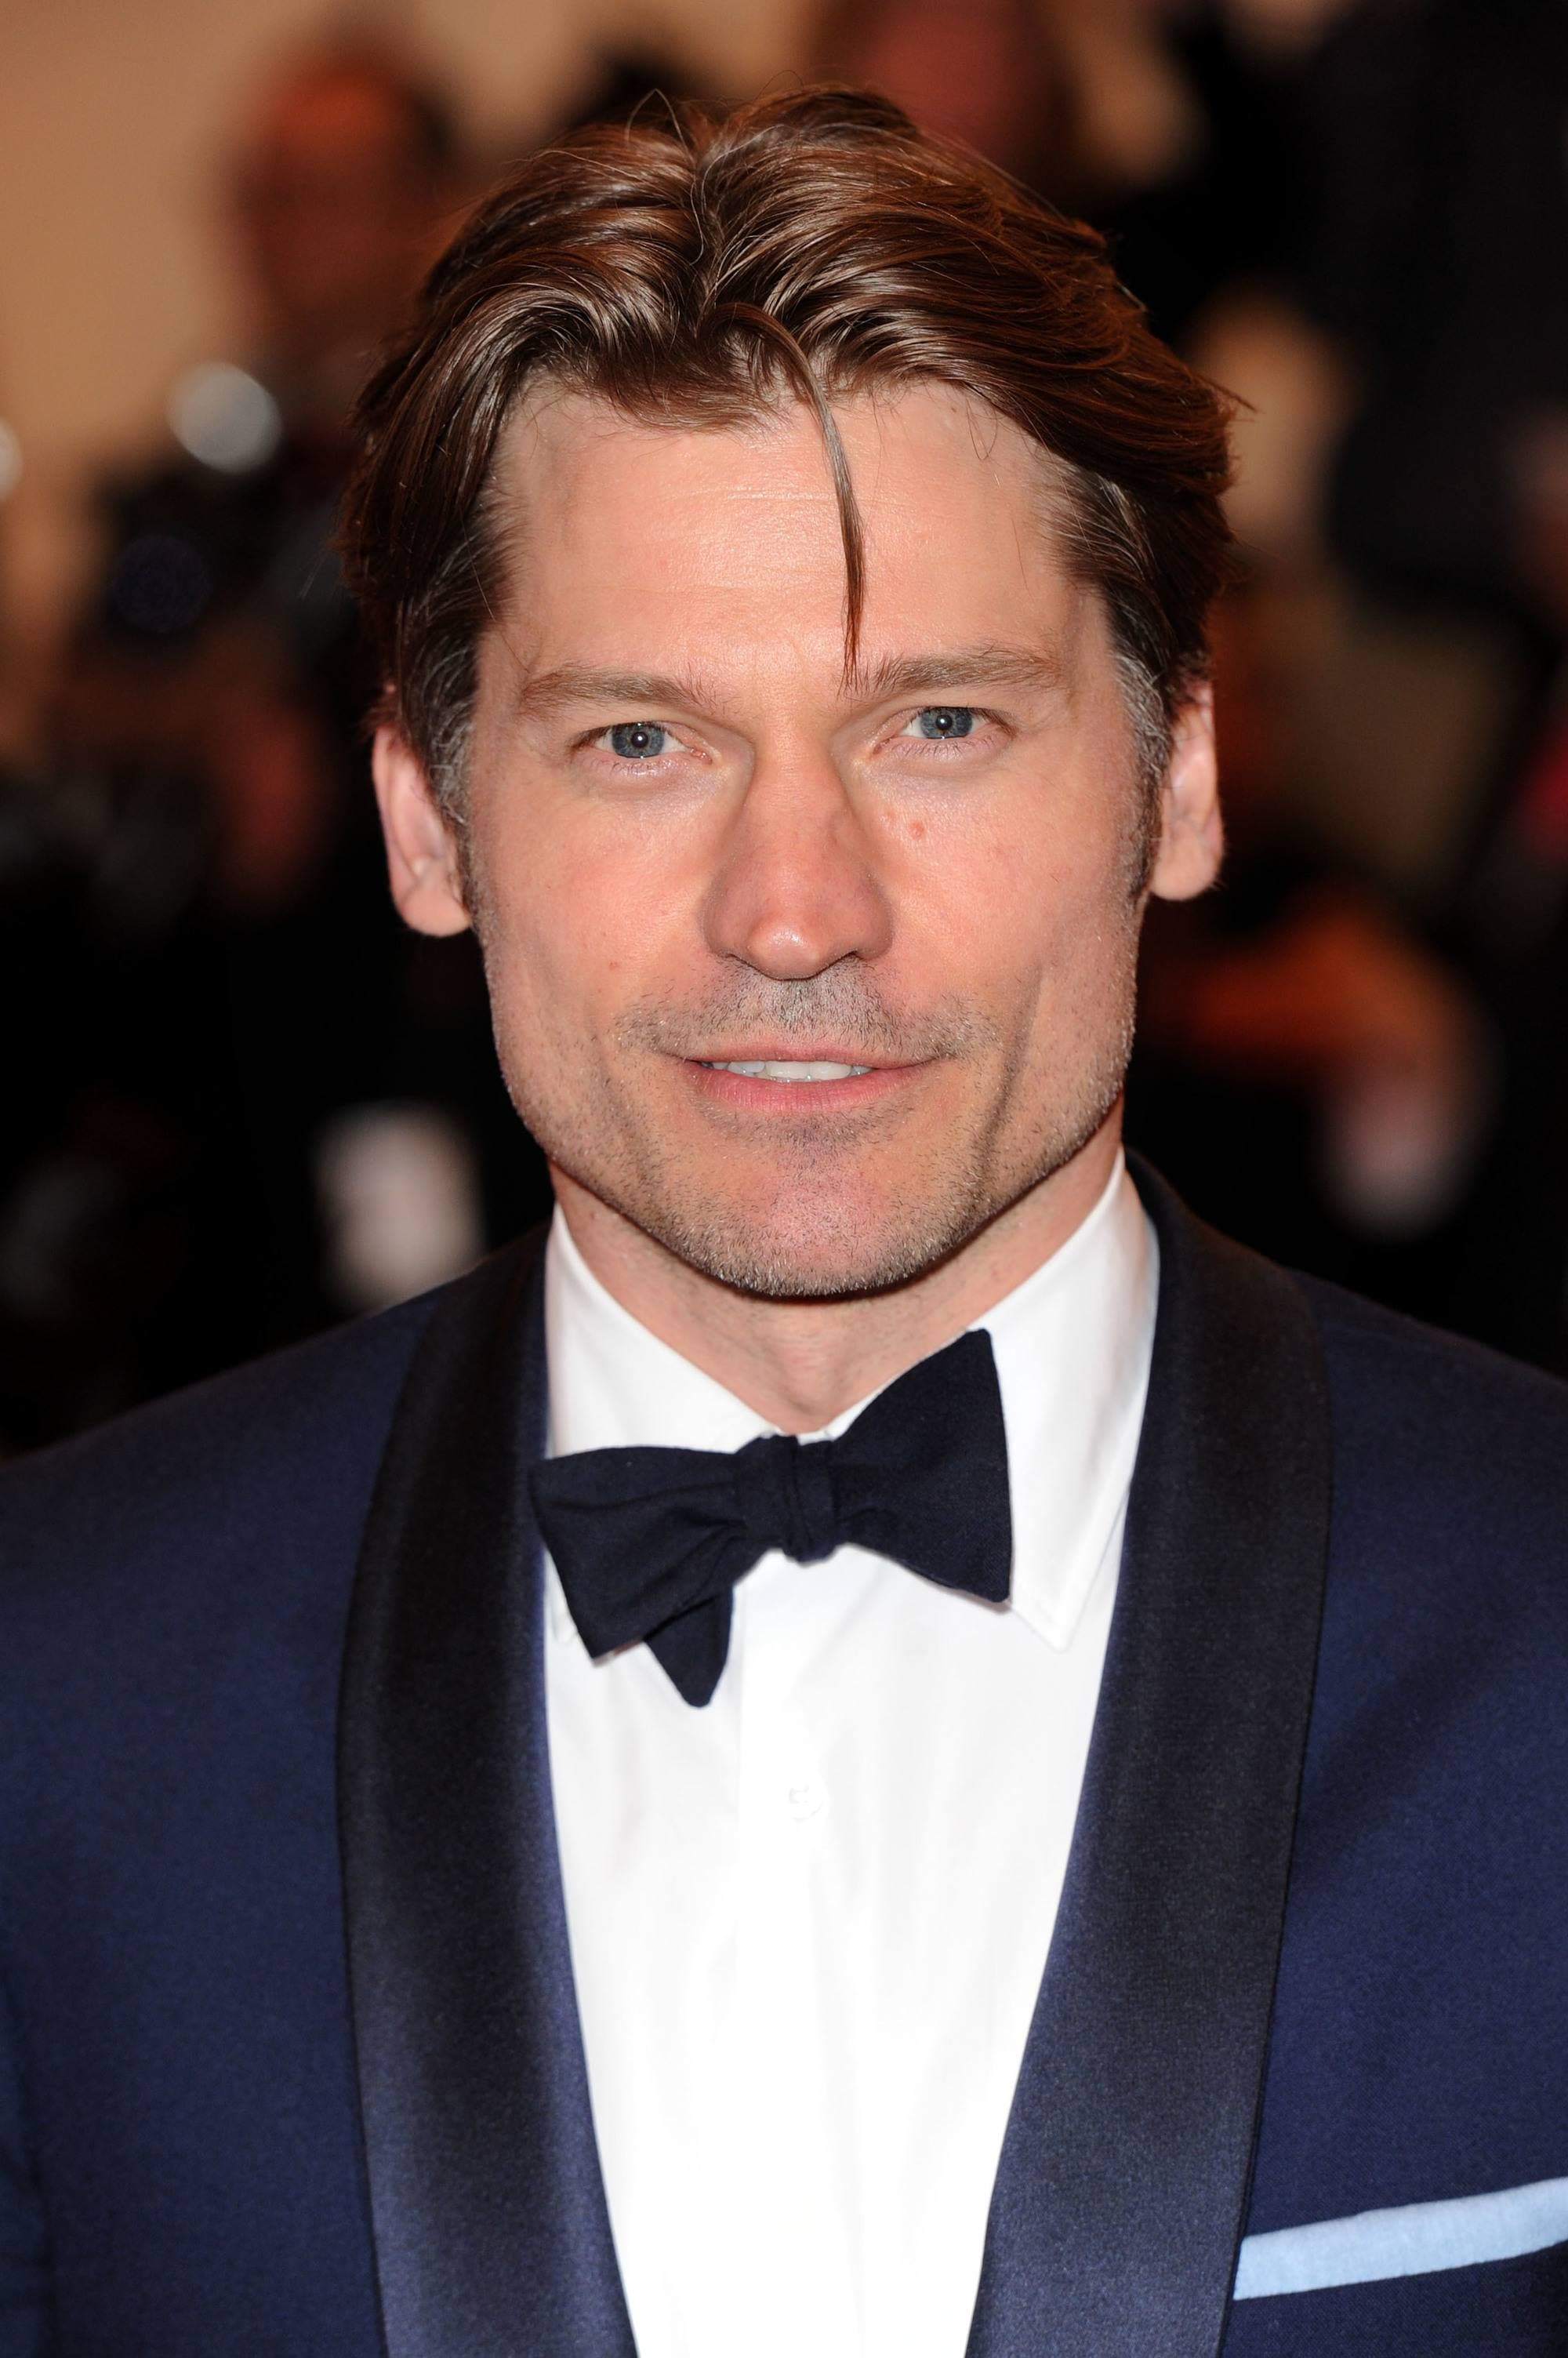 Nikolaj Coster-Waldau with curtain cut and blue suit on the met gala red carpet